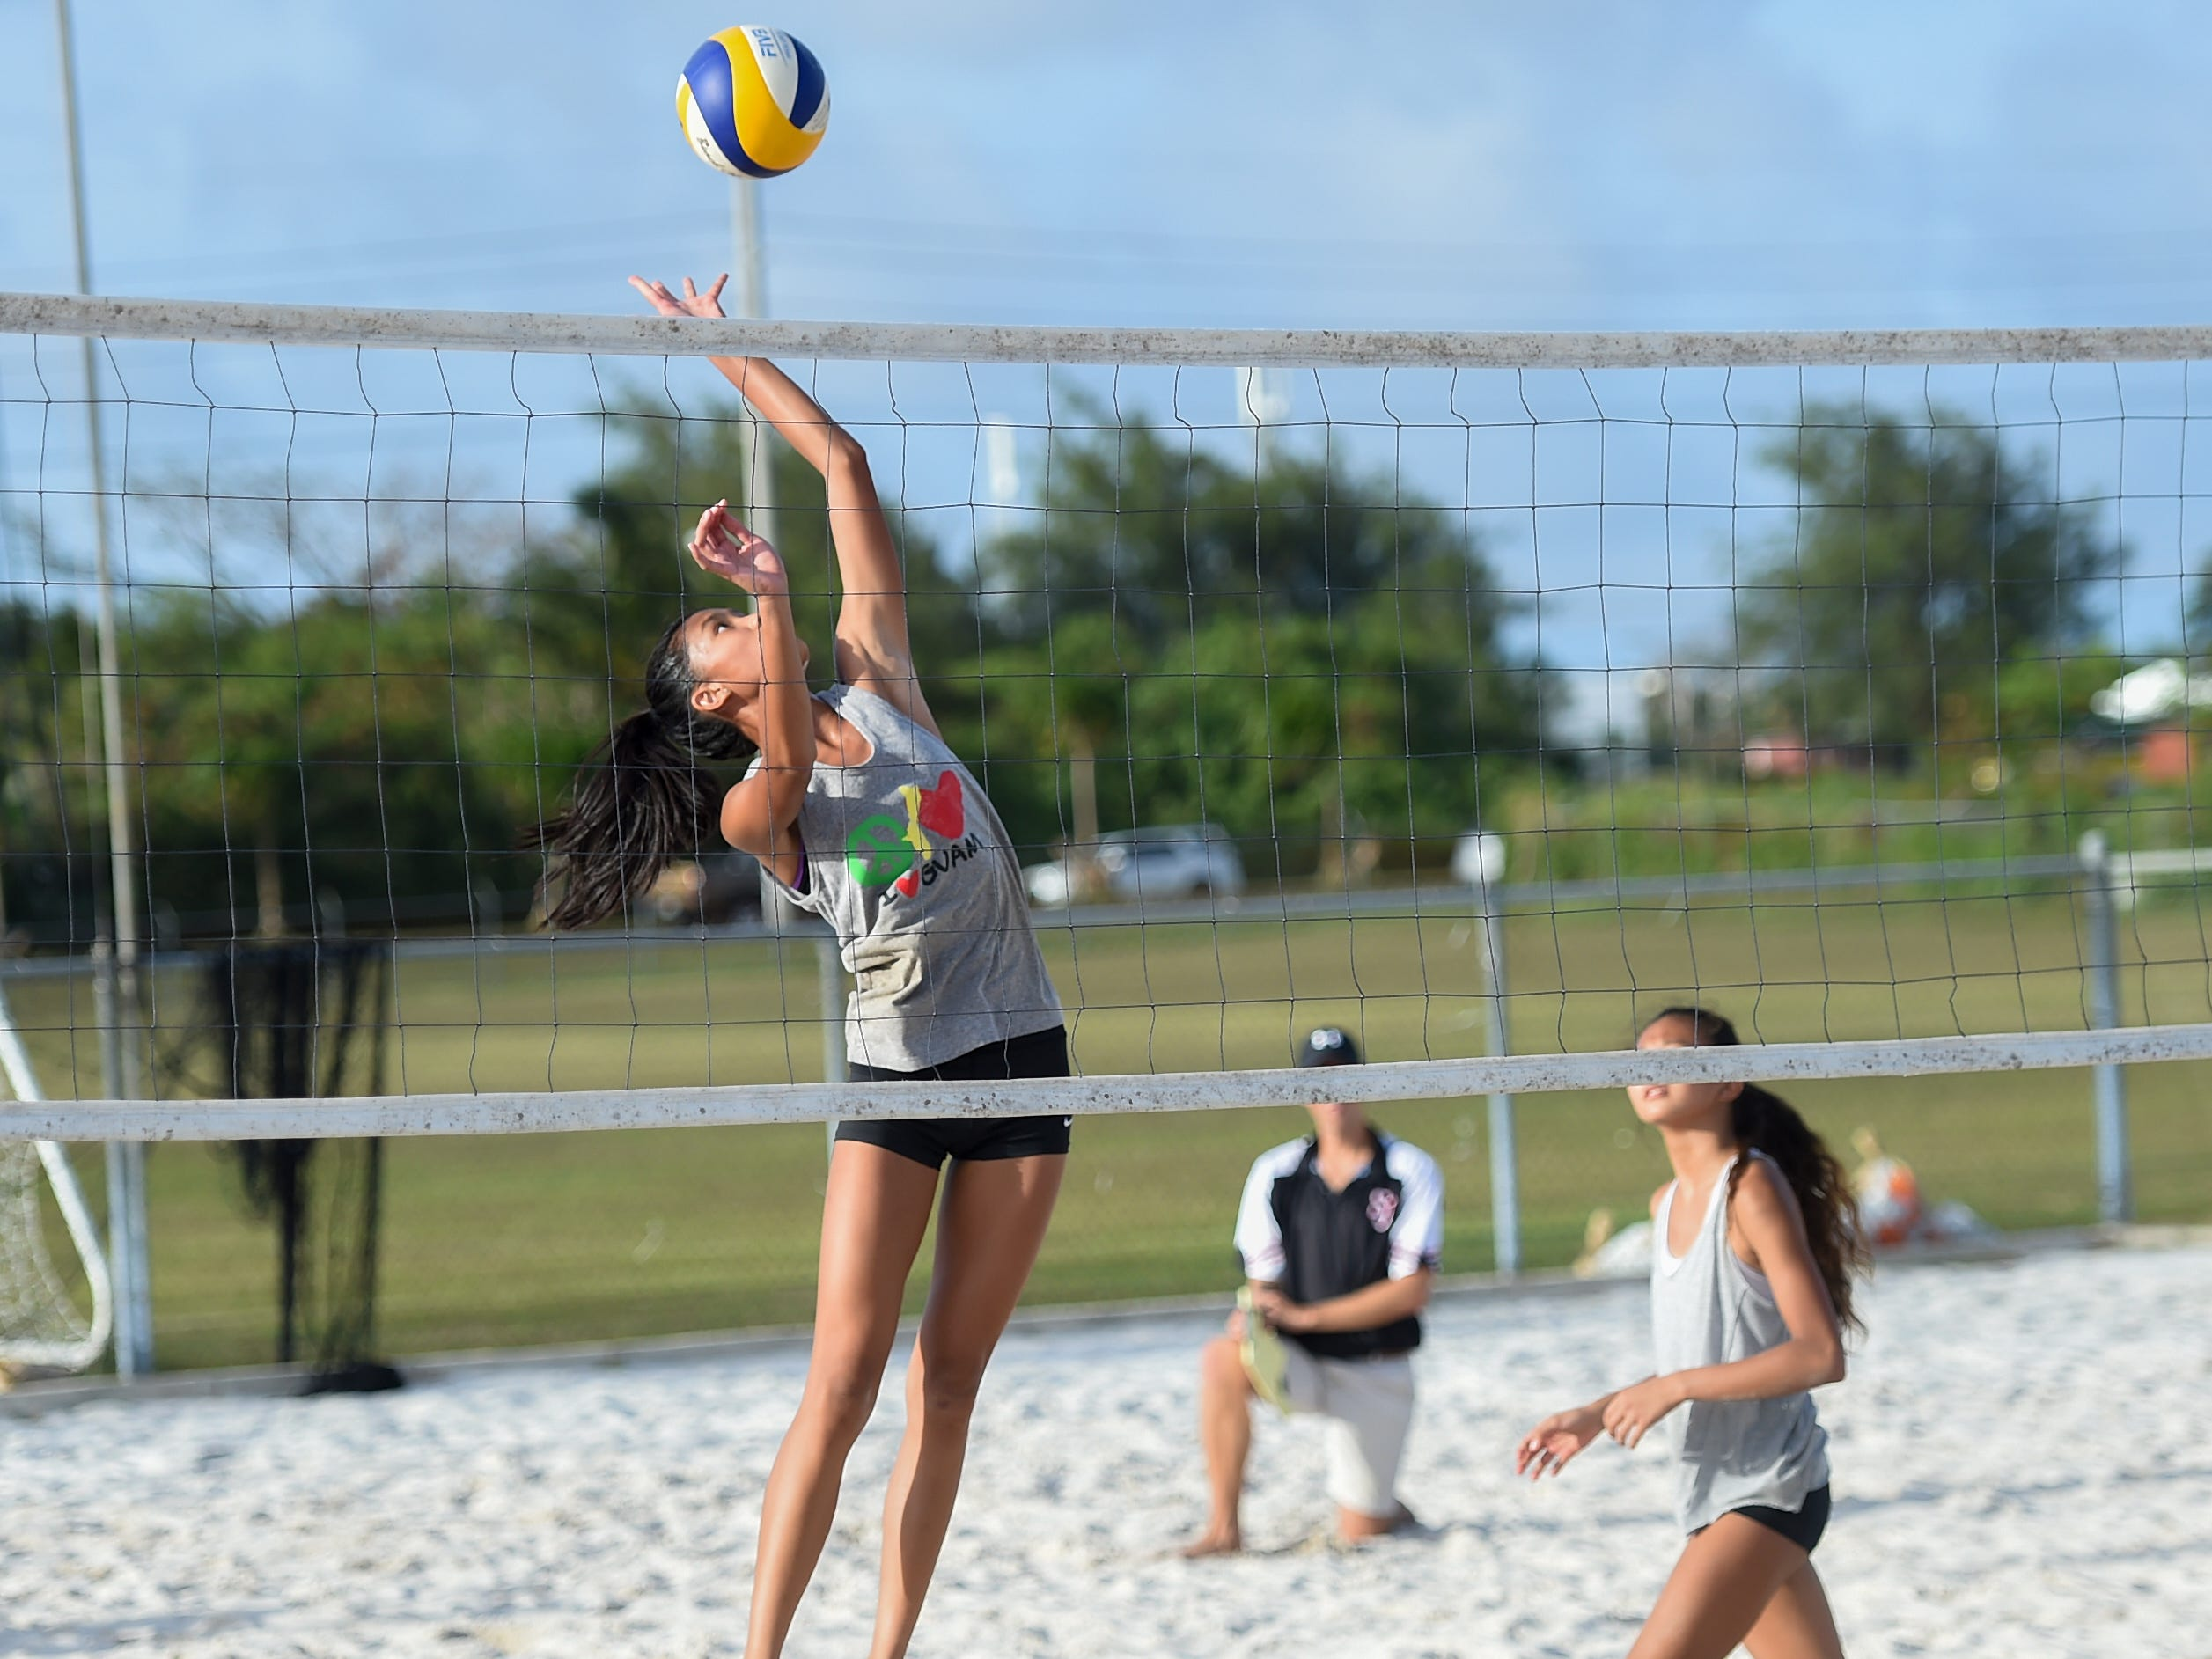 St. John's player Kristen Serrano jumps to spike during the IIAAG Beach Volleyball championship game at the Guam Football Association National Training Center in Dededo, March 12, 2019.